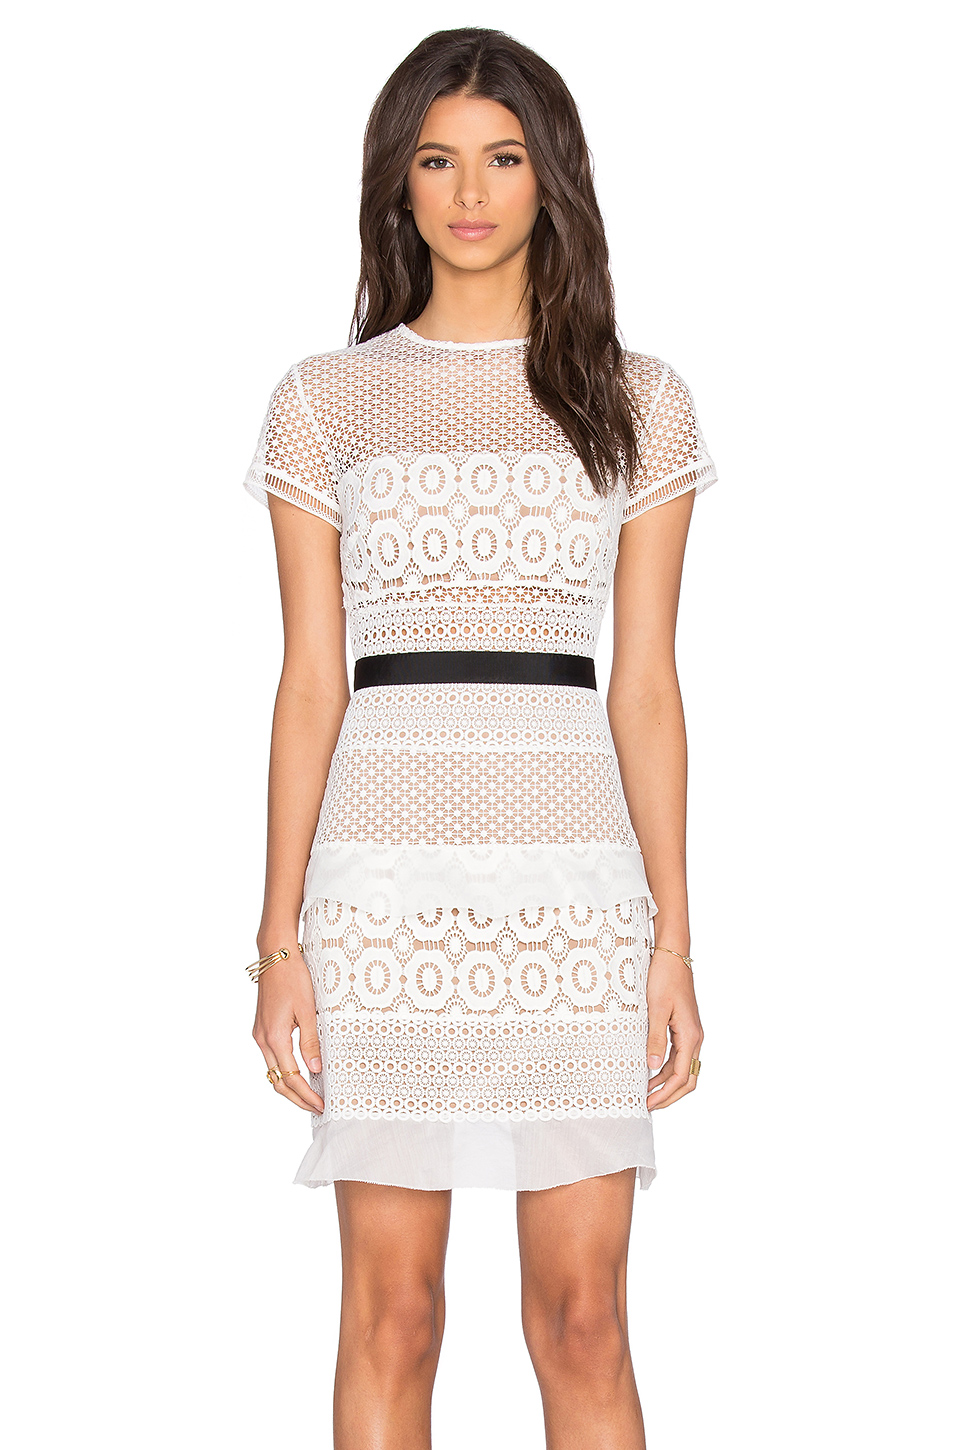 SELF-PORTRAIT Striped Floral Lace Mini Dress, White/Black at REVOLVE